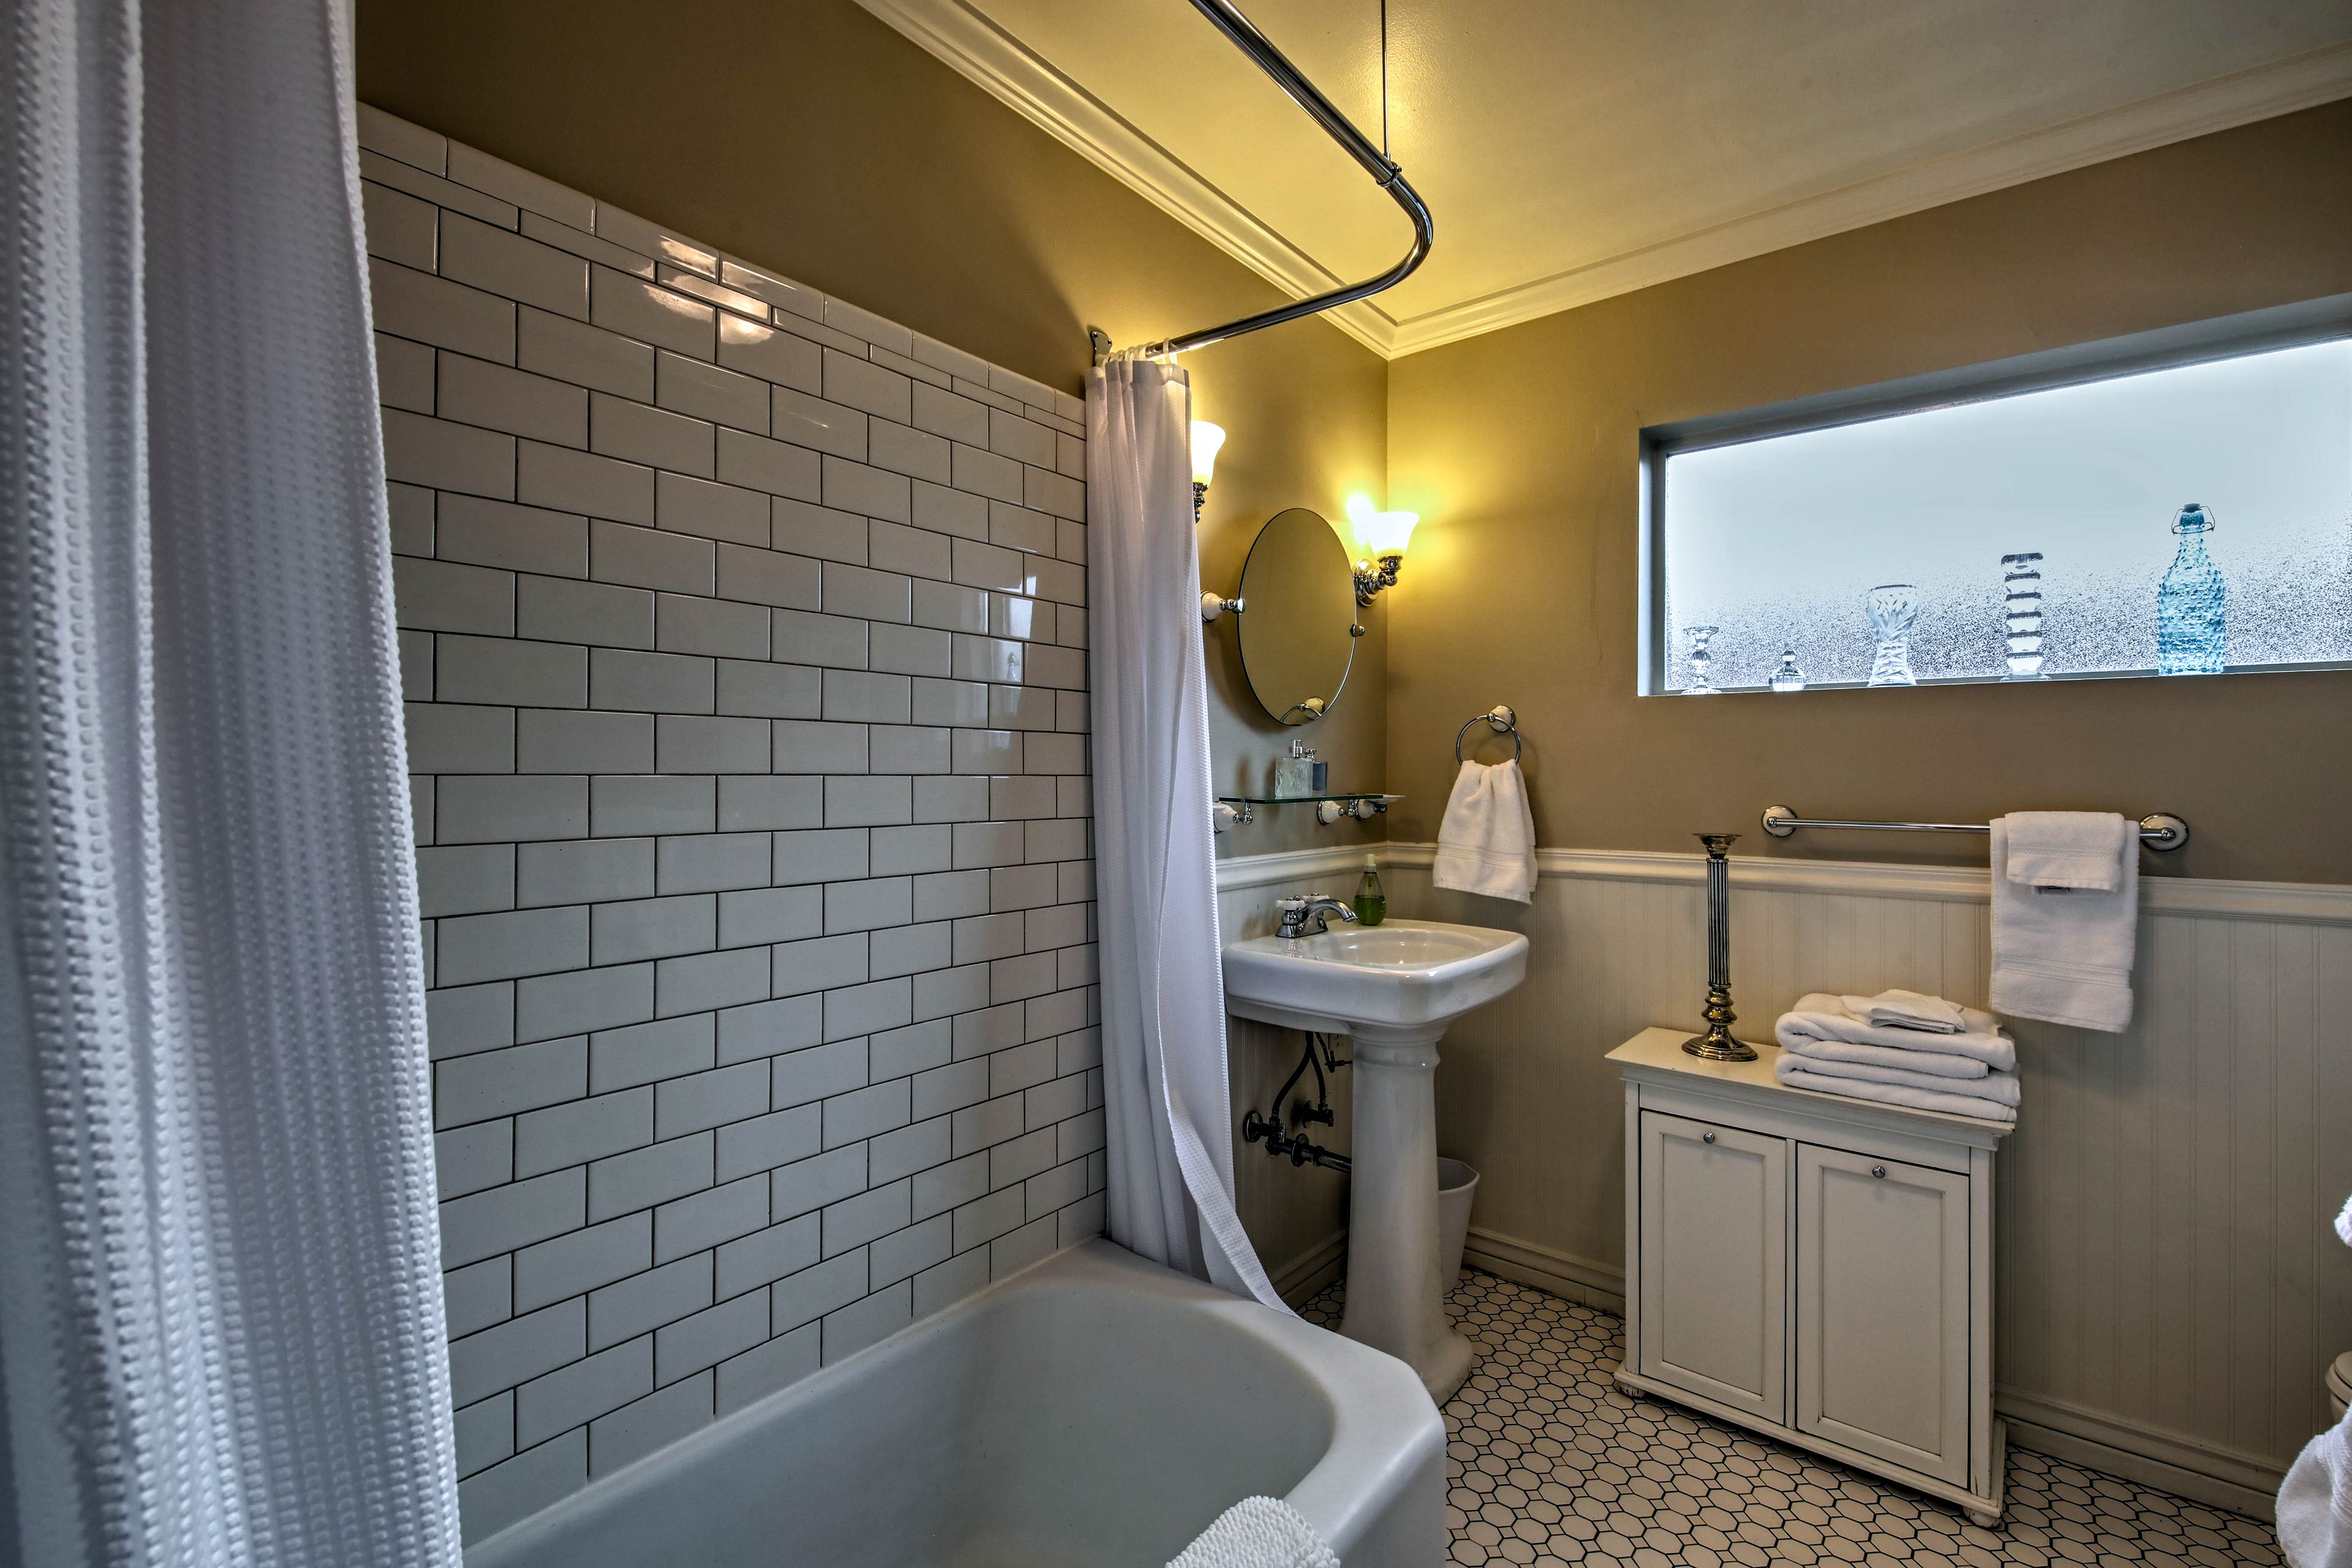 Subway tile highlights the shower/tub combo in the second bathroom.